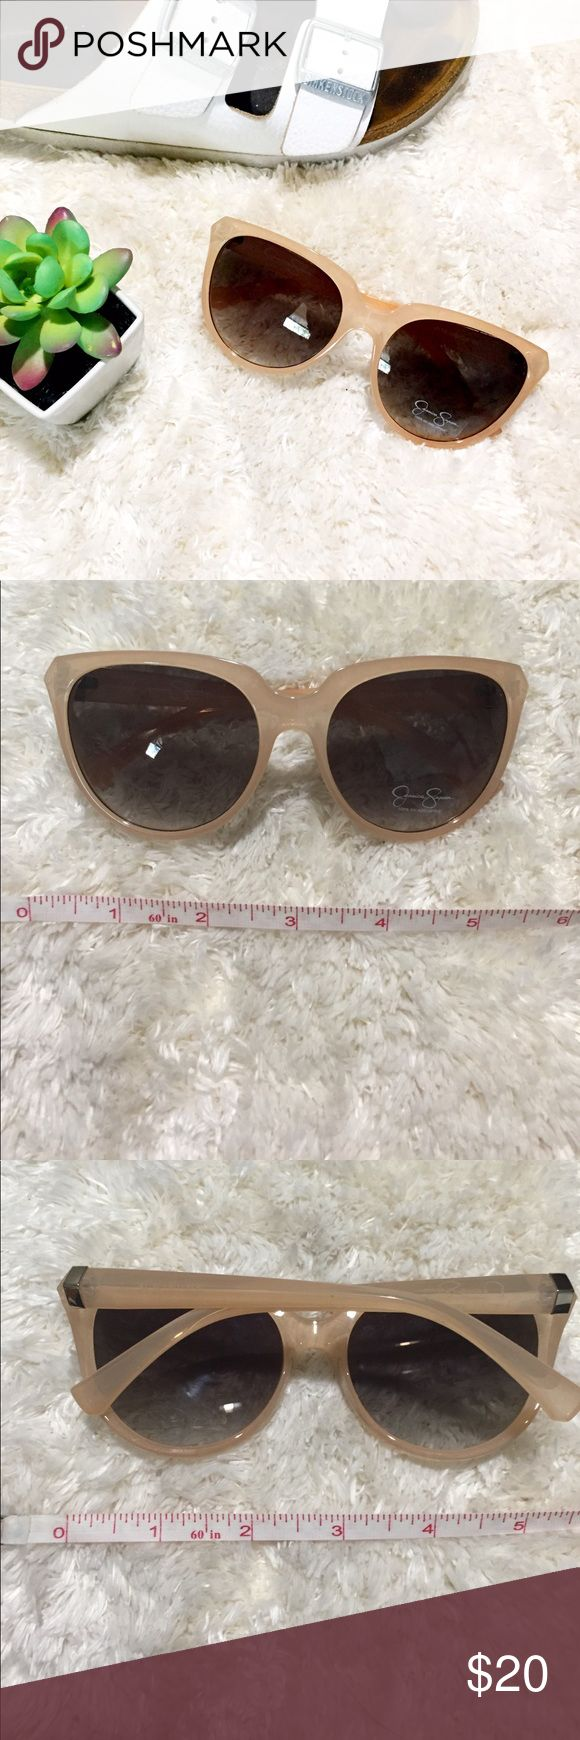 NWOT Jessica Simpson Sunglasses Brand new Jessica Simpson sunglasses with very lightweight plastic frames in a pale pink. Slightly oversized, silver details. 100% UV absorptive. Jessica Simpson Accessories Sunglasses